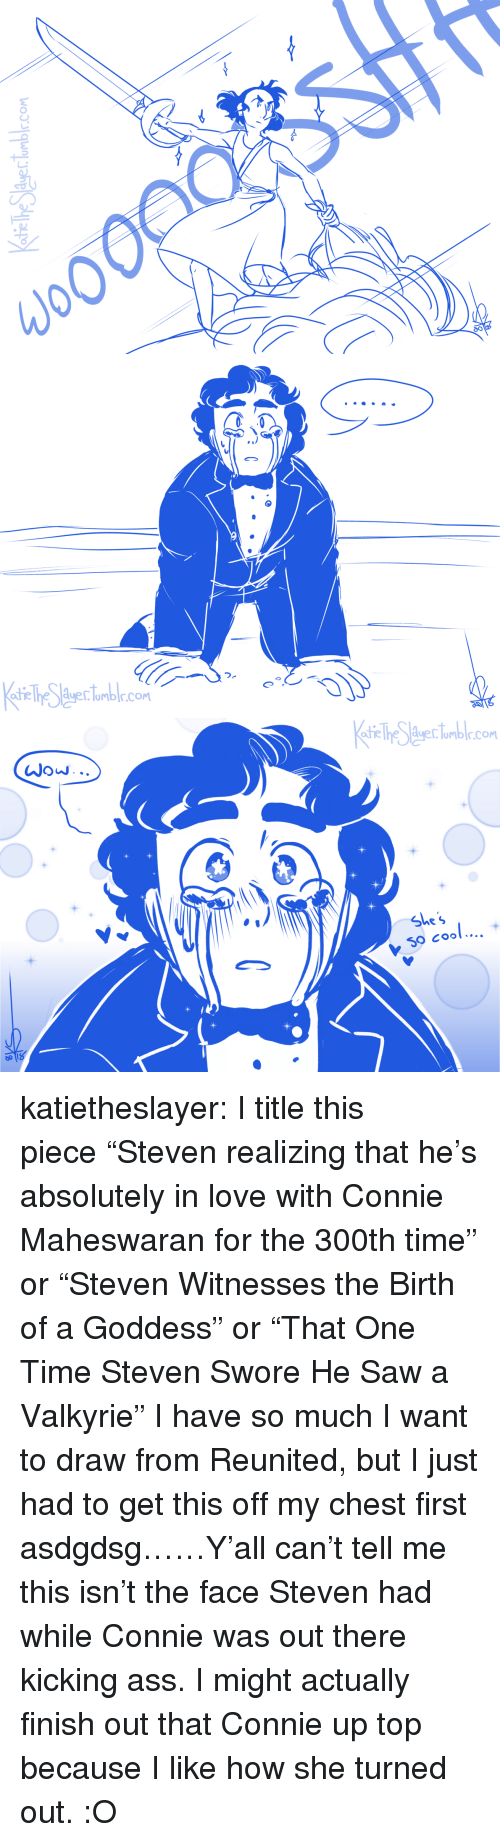 "Love, Saw, and Target: the The duerlomblr.com   atie he duerlumblr.com   te lhe Auerlumbr.com  JOJ. ..  She  S0 Cool.... katietheslayer: I title this piece ""Steven realizing that he's absolutely in love with Connie Maheswaran for the 300th time"" or ""Steven Witnesses the Birth of a Goddess"" or ""That One Time Steven Swore He Saw a Valkyrie"" I have so much I want to draw from Reunited, but I just had to get this off my chest first asdgdsg……Y'all can't tell me this isn't the face Steven had while Connie was out there kicking ass. I might actually finish out that Connie up top because I like how she turned out. :O"